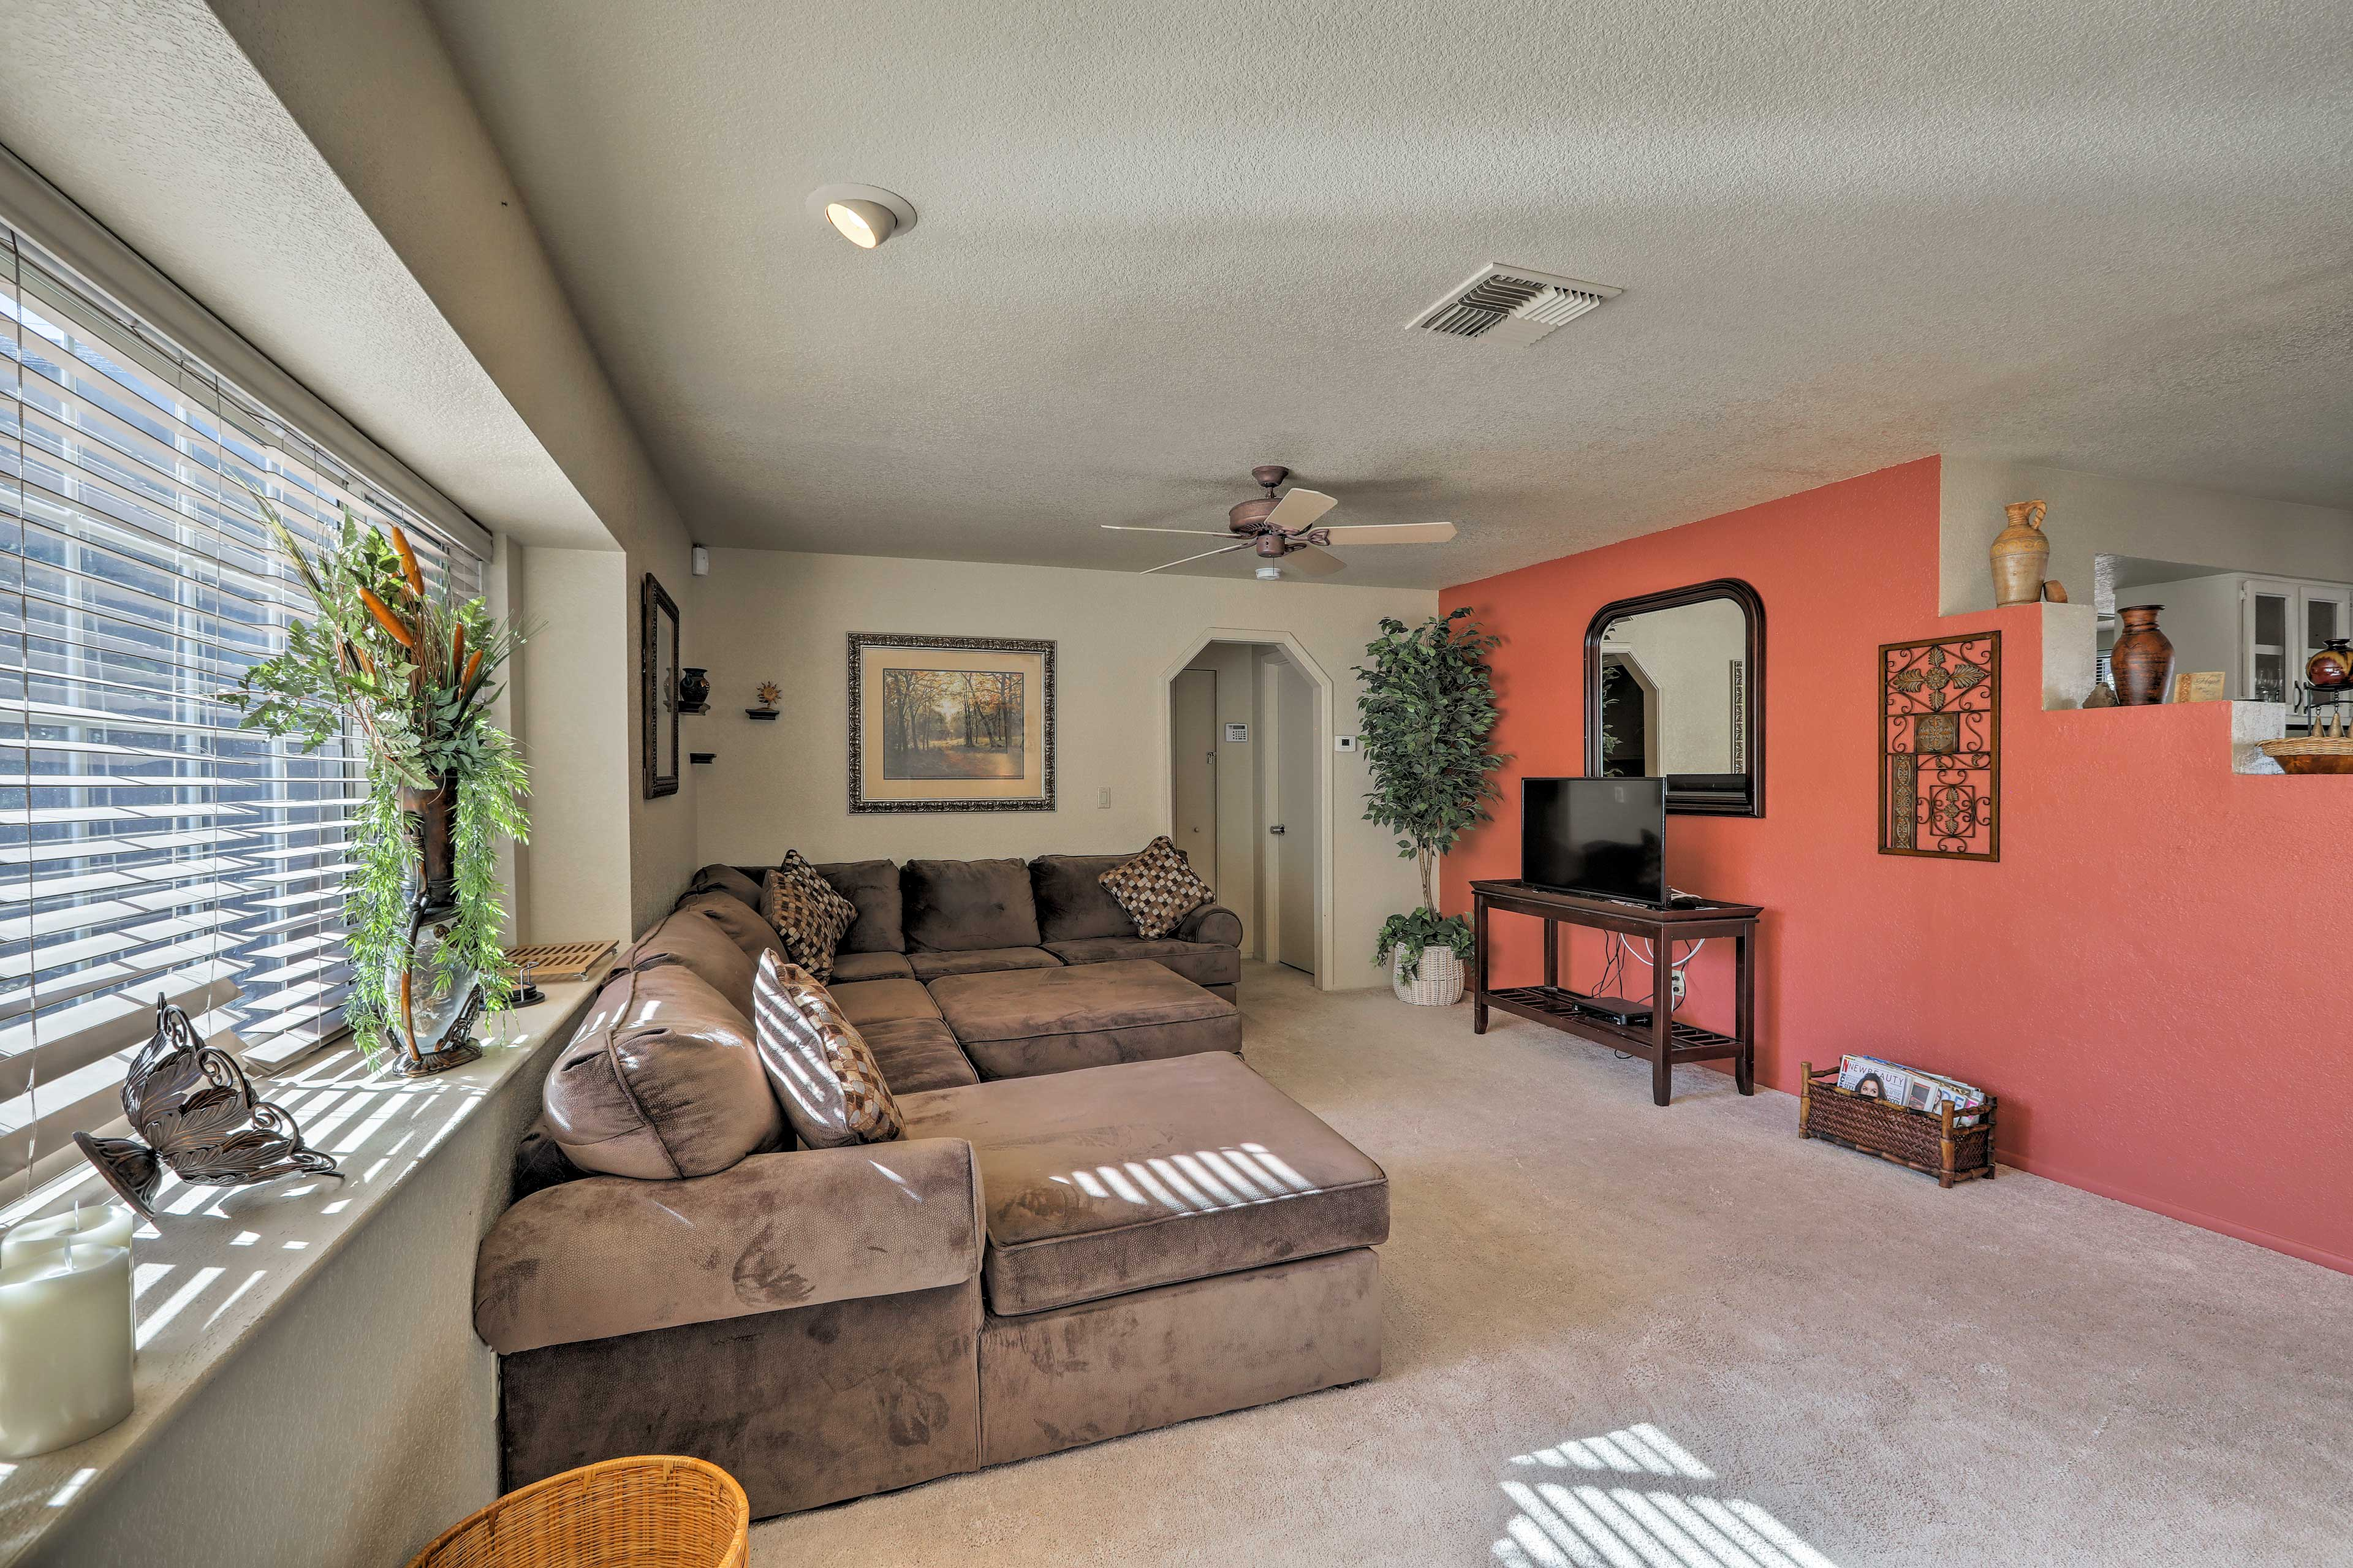 An additional guest in your group can sleep on the sectional couch!